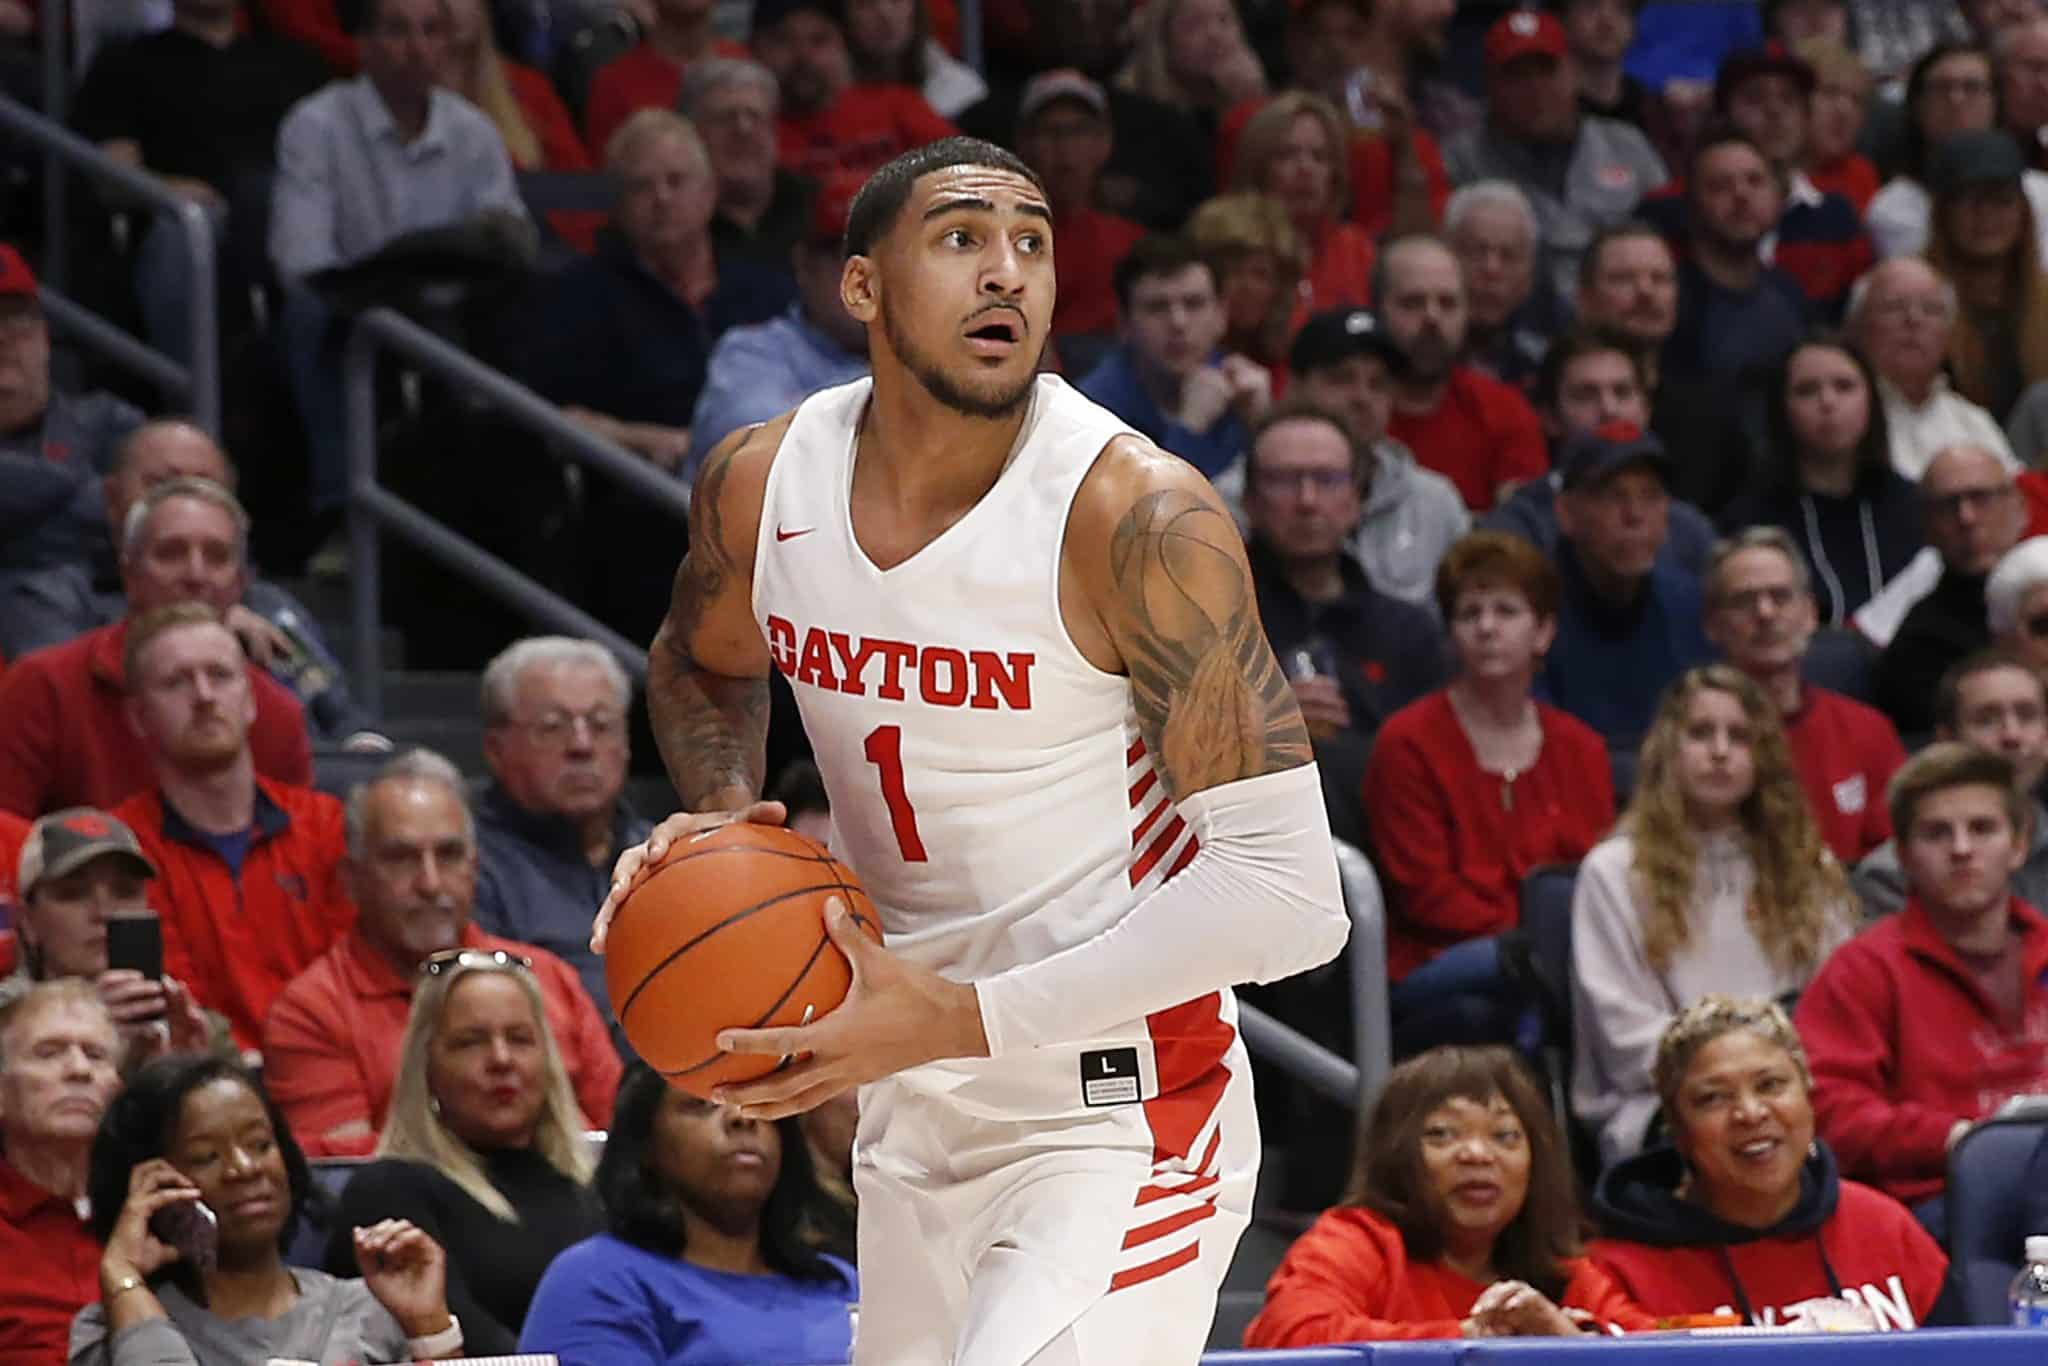 DAYTON, OHIO - FEBRUARY 22: Obi Toppin #1 of the Dayton Flyers looks to pass the ball in the game against the Duquesne Dukes at UD Arena on February 22, 2020 in Dayton, Ohio.